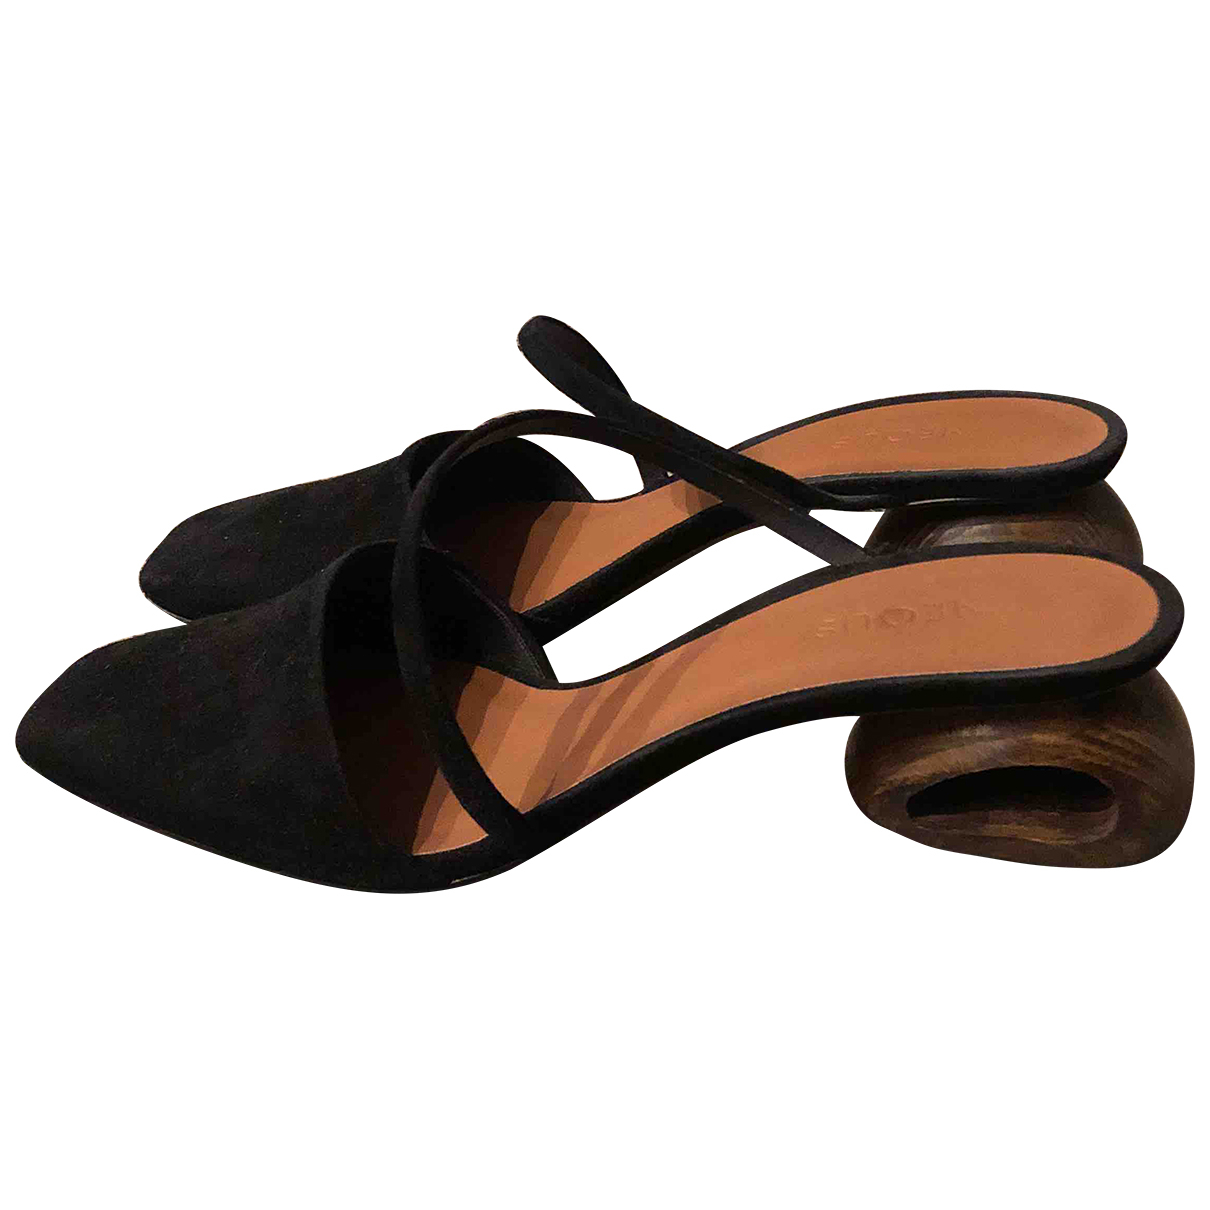 Neous \N Black Leather Mules & Clogs for Women 38 EU